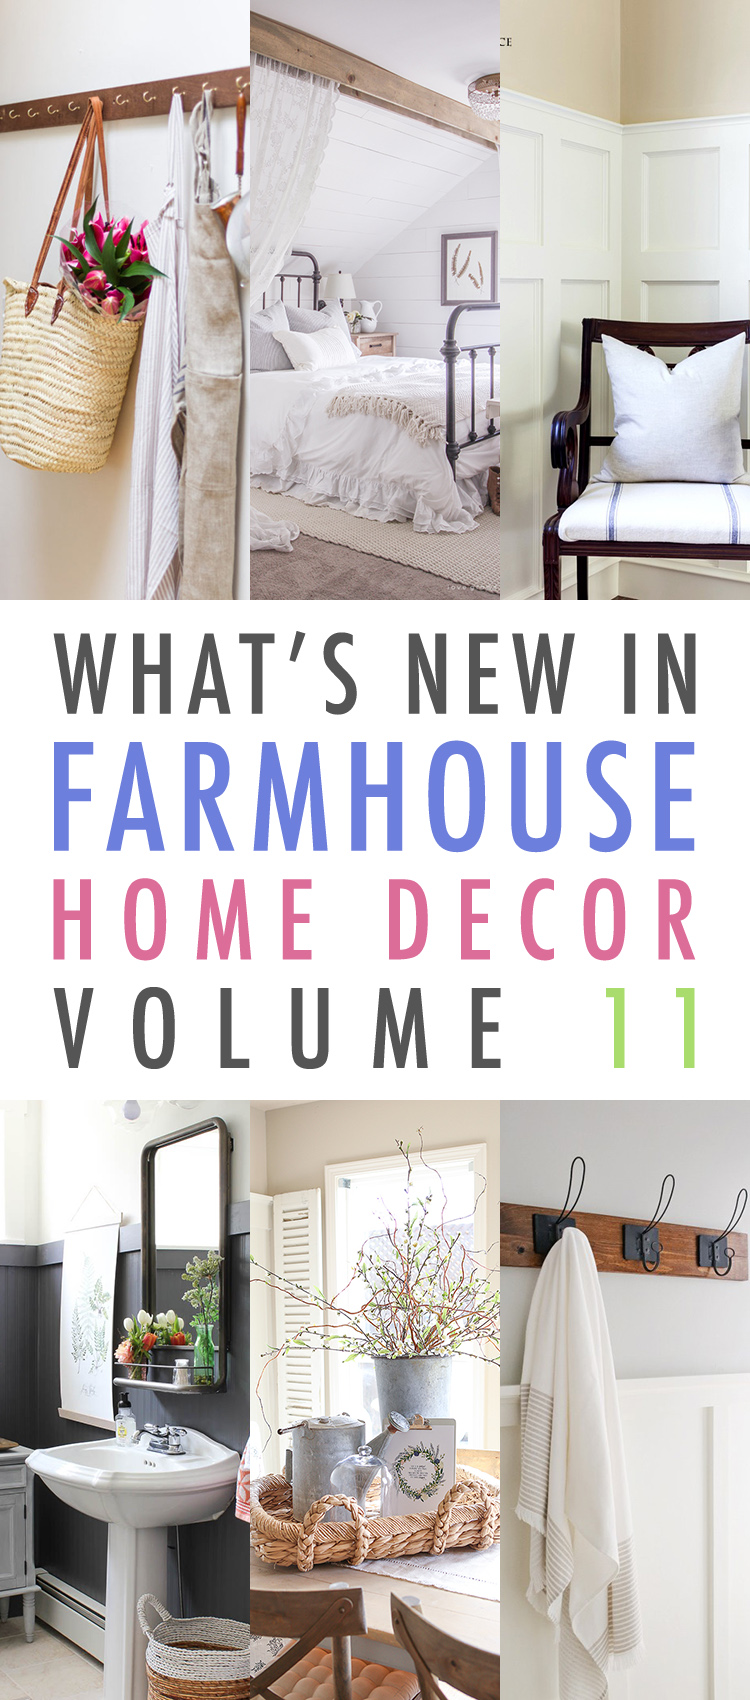 So Sit Backu2026grab That Favorite Mugu2026fill It Up With Your Favorite Brew And  Check Out Whatu0027s New In Farmhouse Home Decoru2026Enjoy And Then Of Course  CREATE!